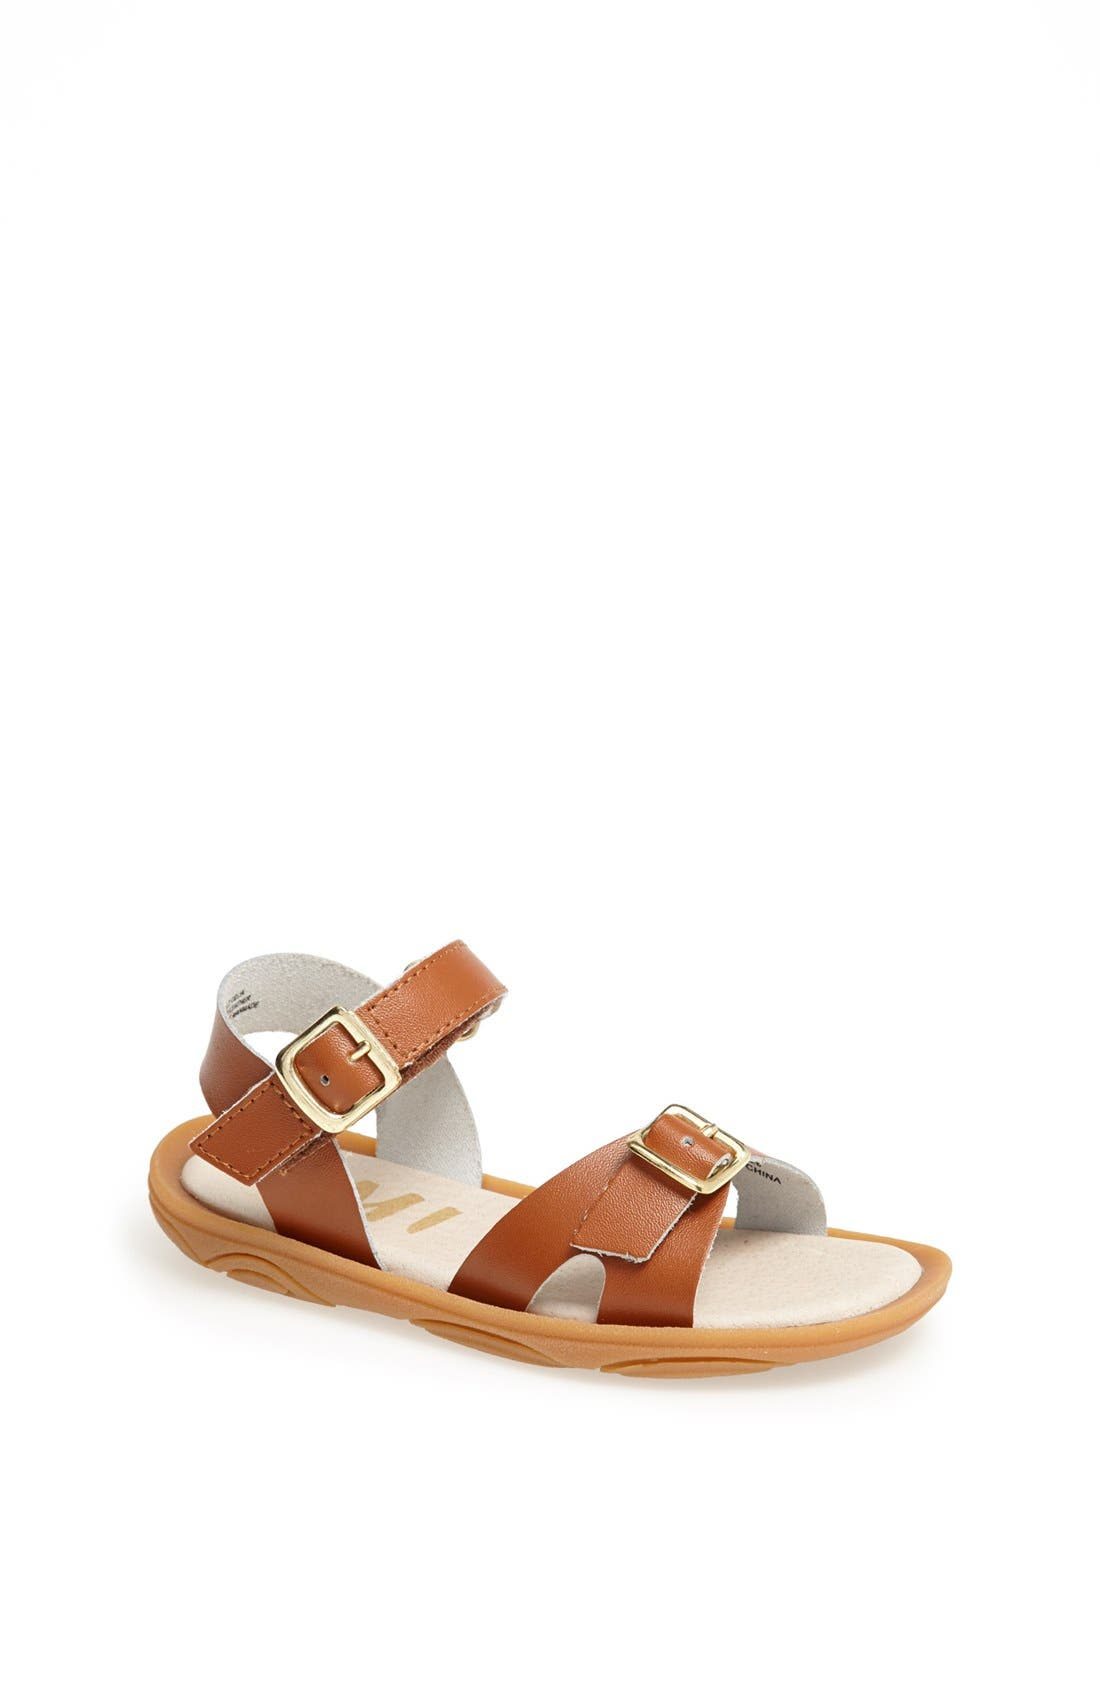 Main Image - Umi 'Celia' Sandal (Walker, Toddler & Little Kid)